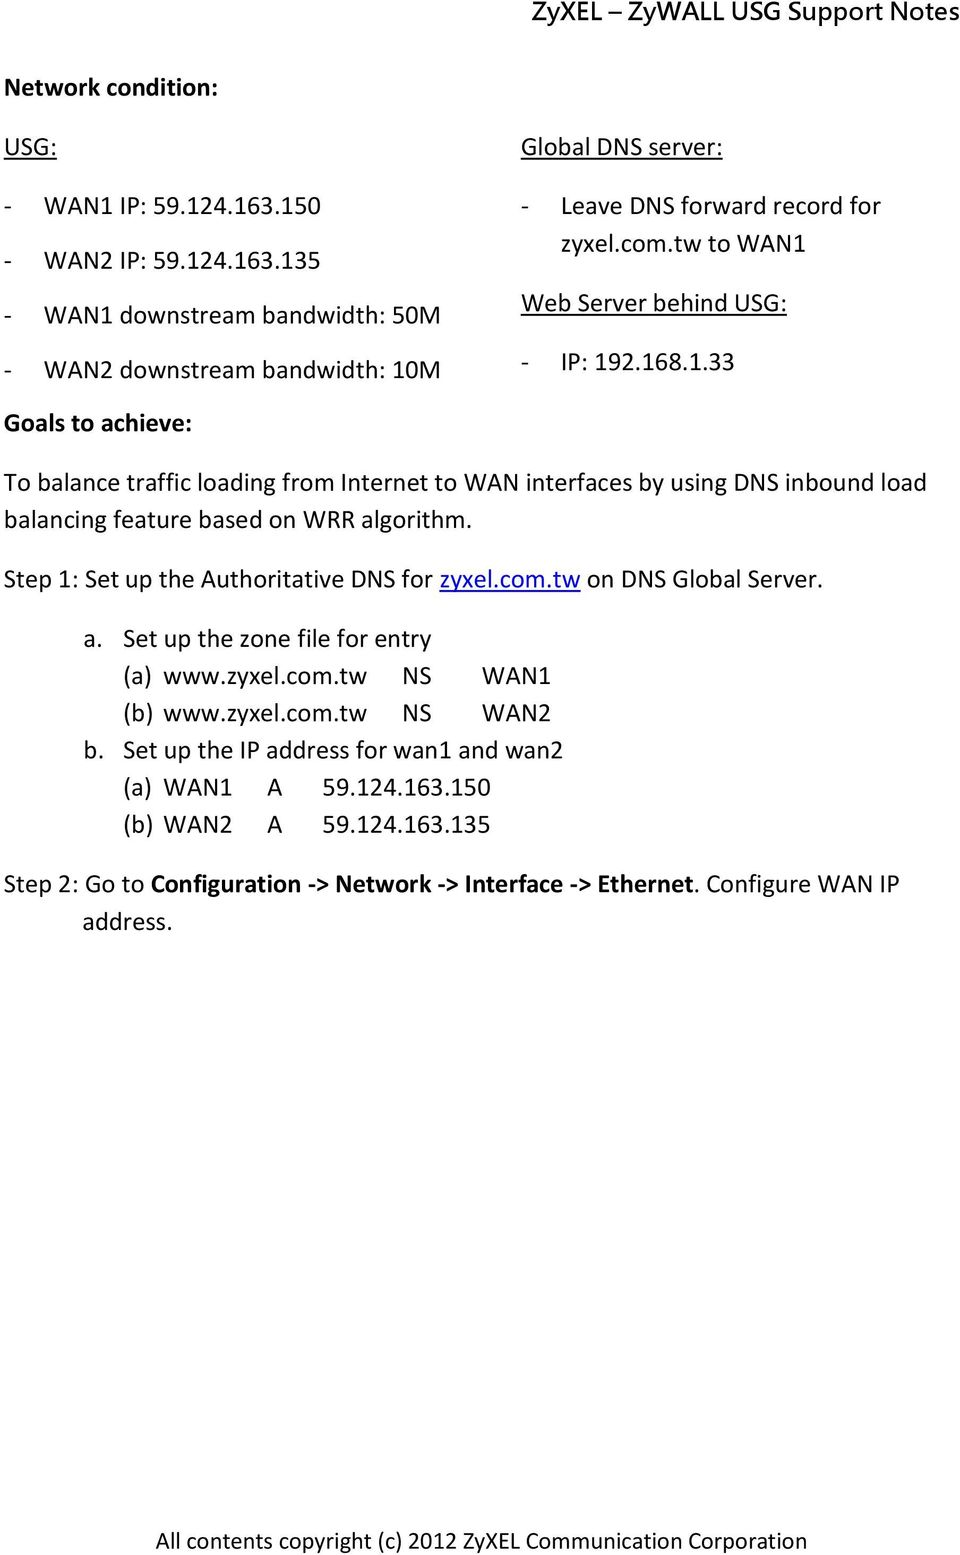 ZyWALL USG ZLD 3 0 Support Notes - PDF